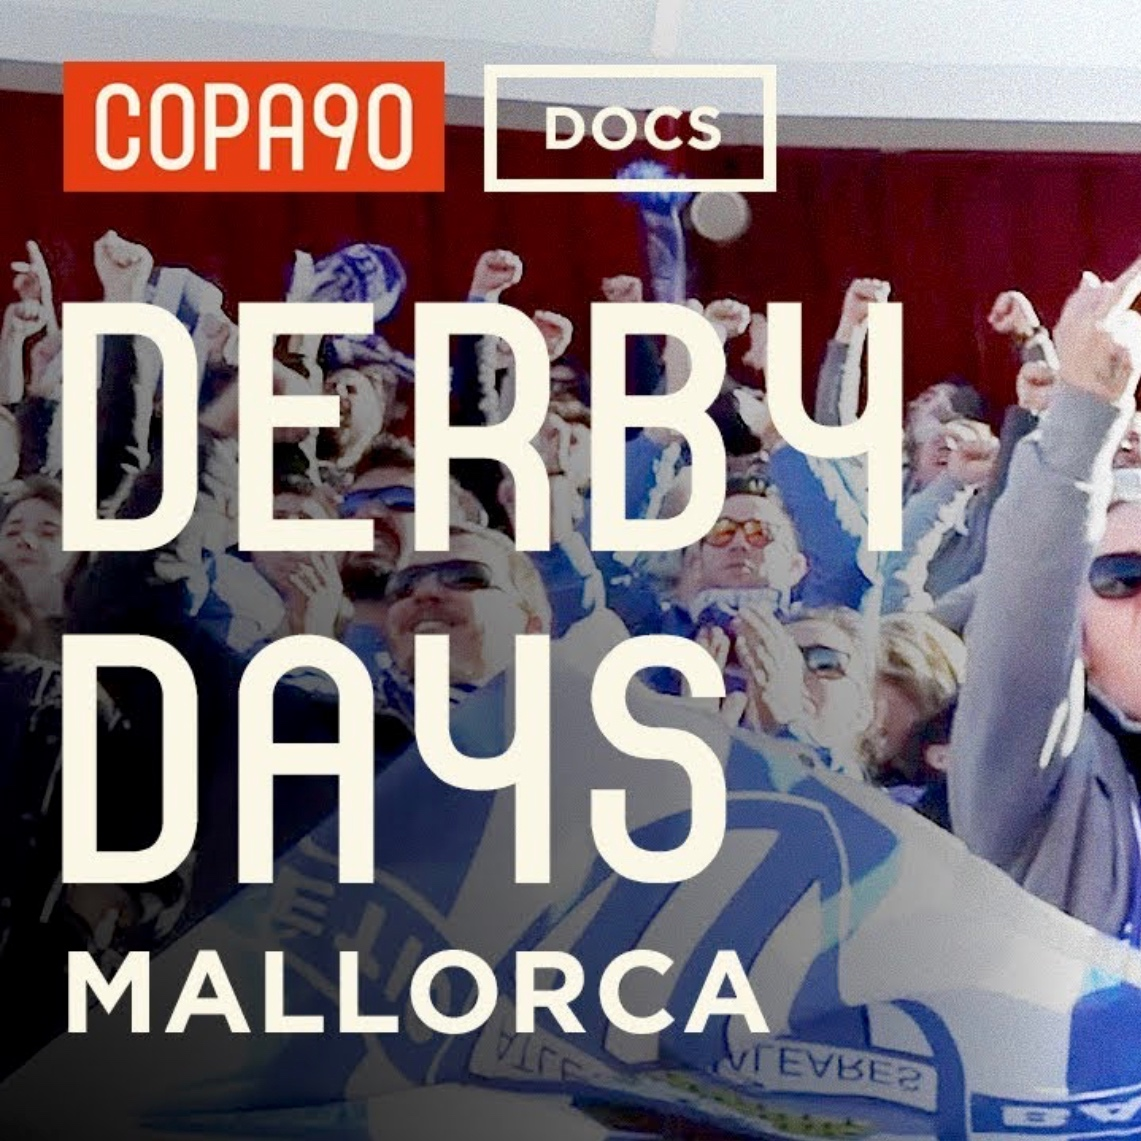 Copa90 Derby Days Mallorca